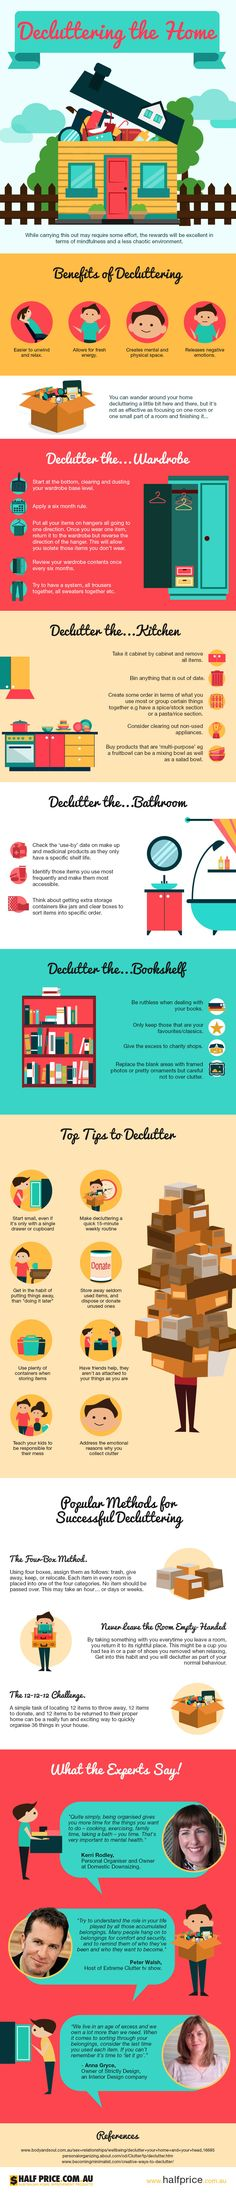 Infographic: Decluttering The Home